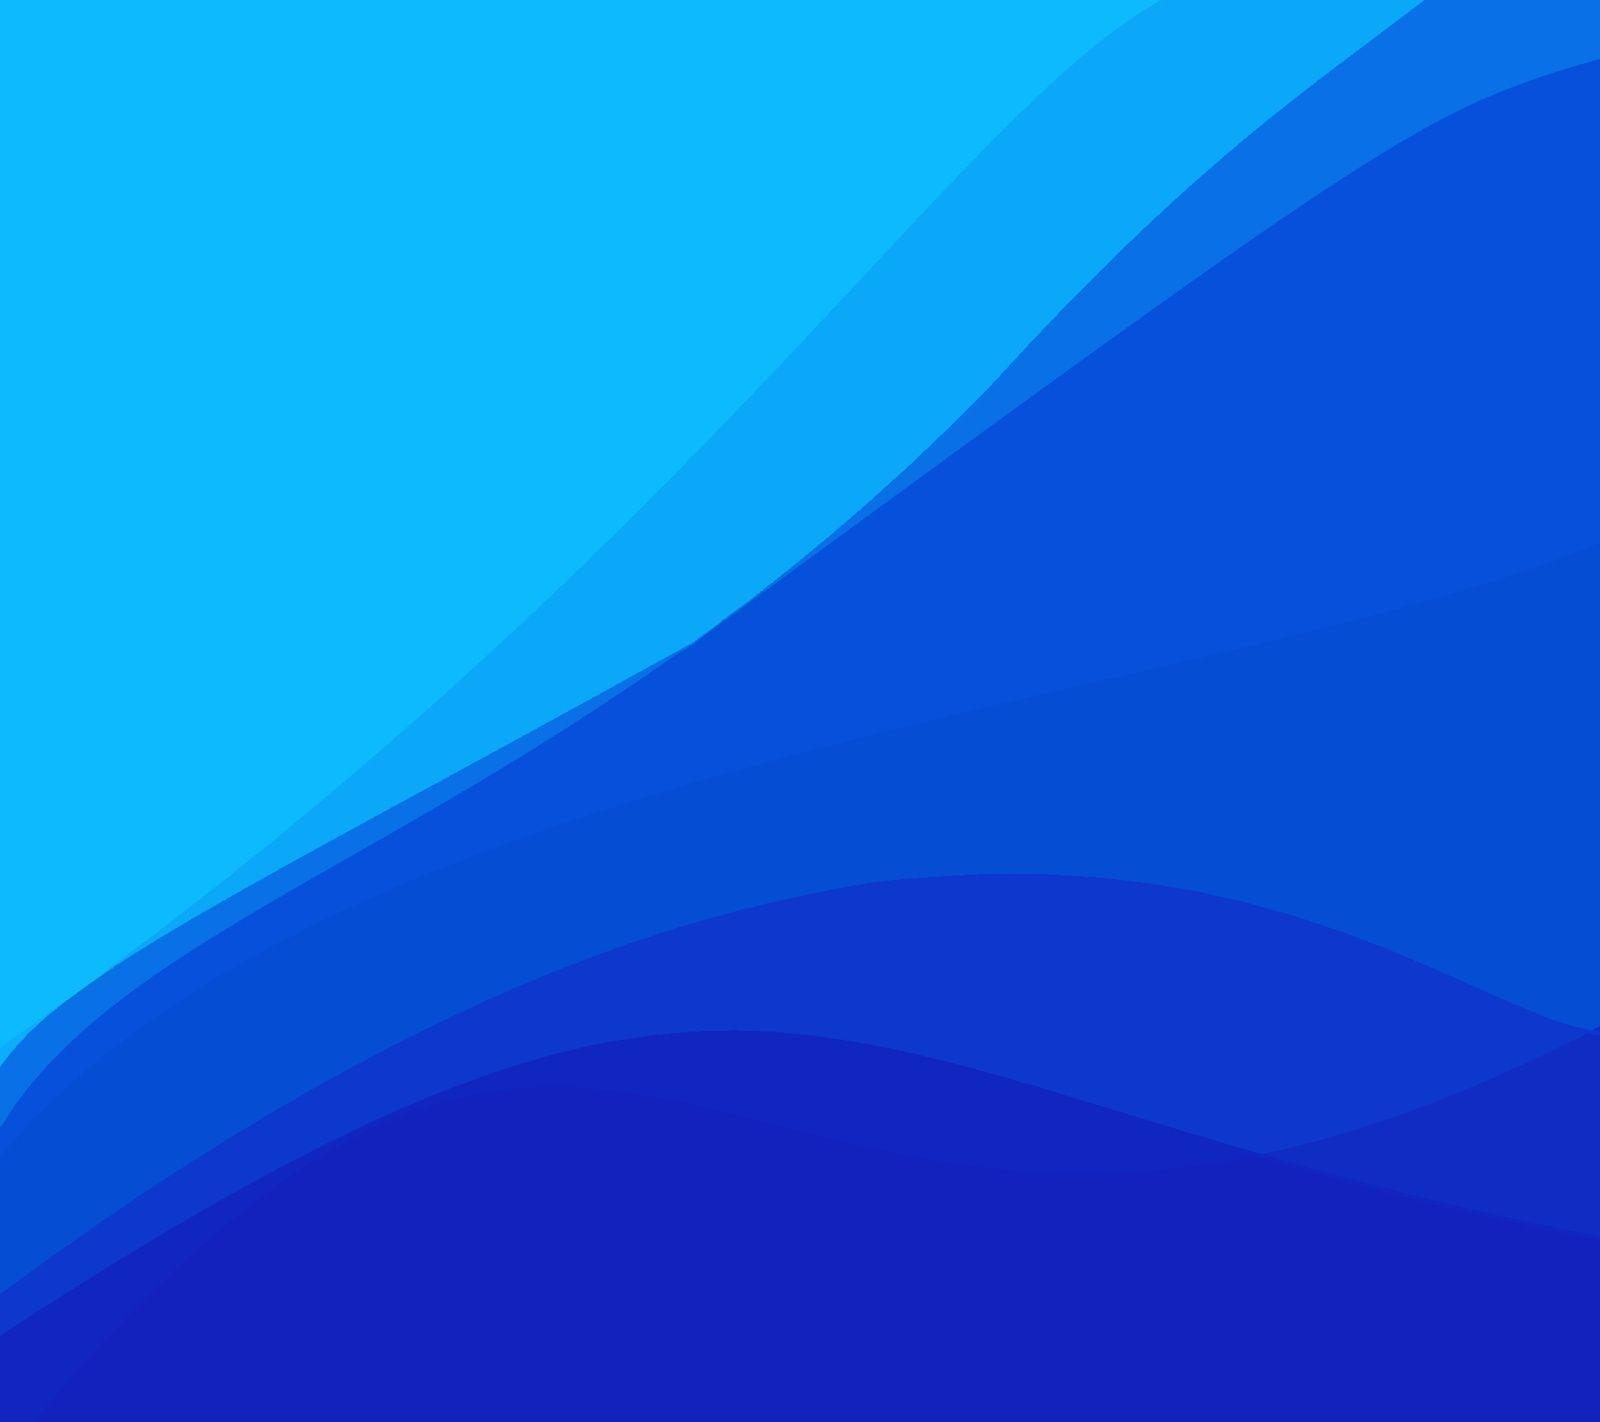 Sony Xperia Xz3 Wallpapers Wallpaper Cave